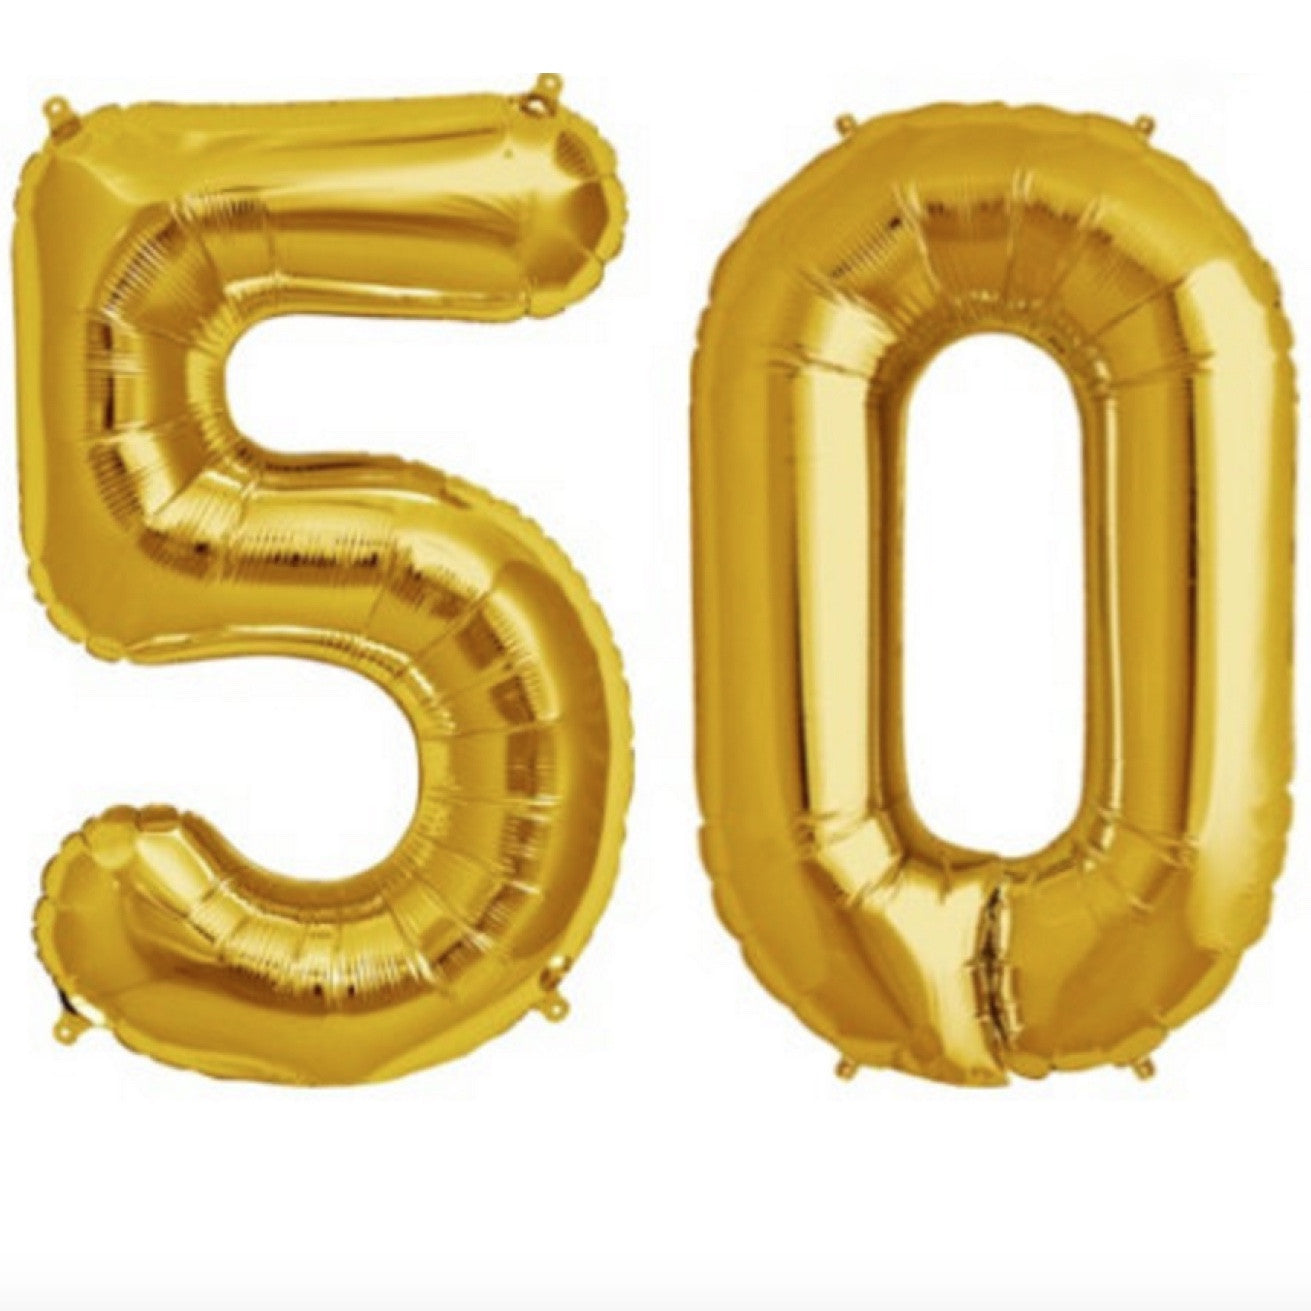 Gold Foil Number Balloon - Fifty, SE-Surprize Enterprize, Putti Fine Furnishings